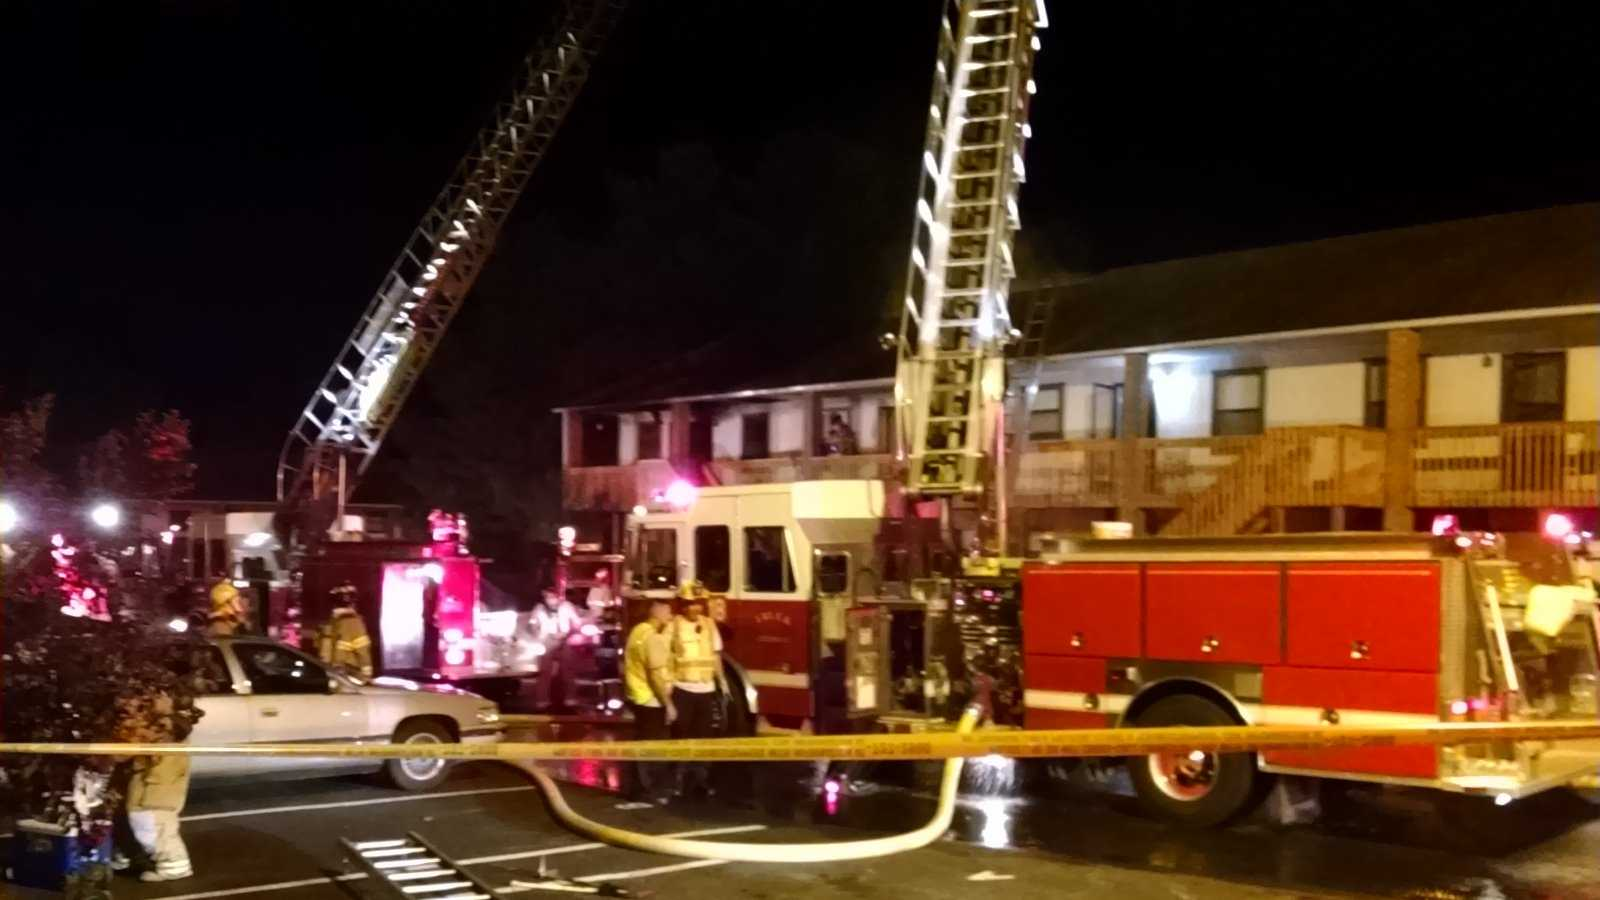 Eight people were displaced after an apartment fire in Winston-Salem on Friday morning.